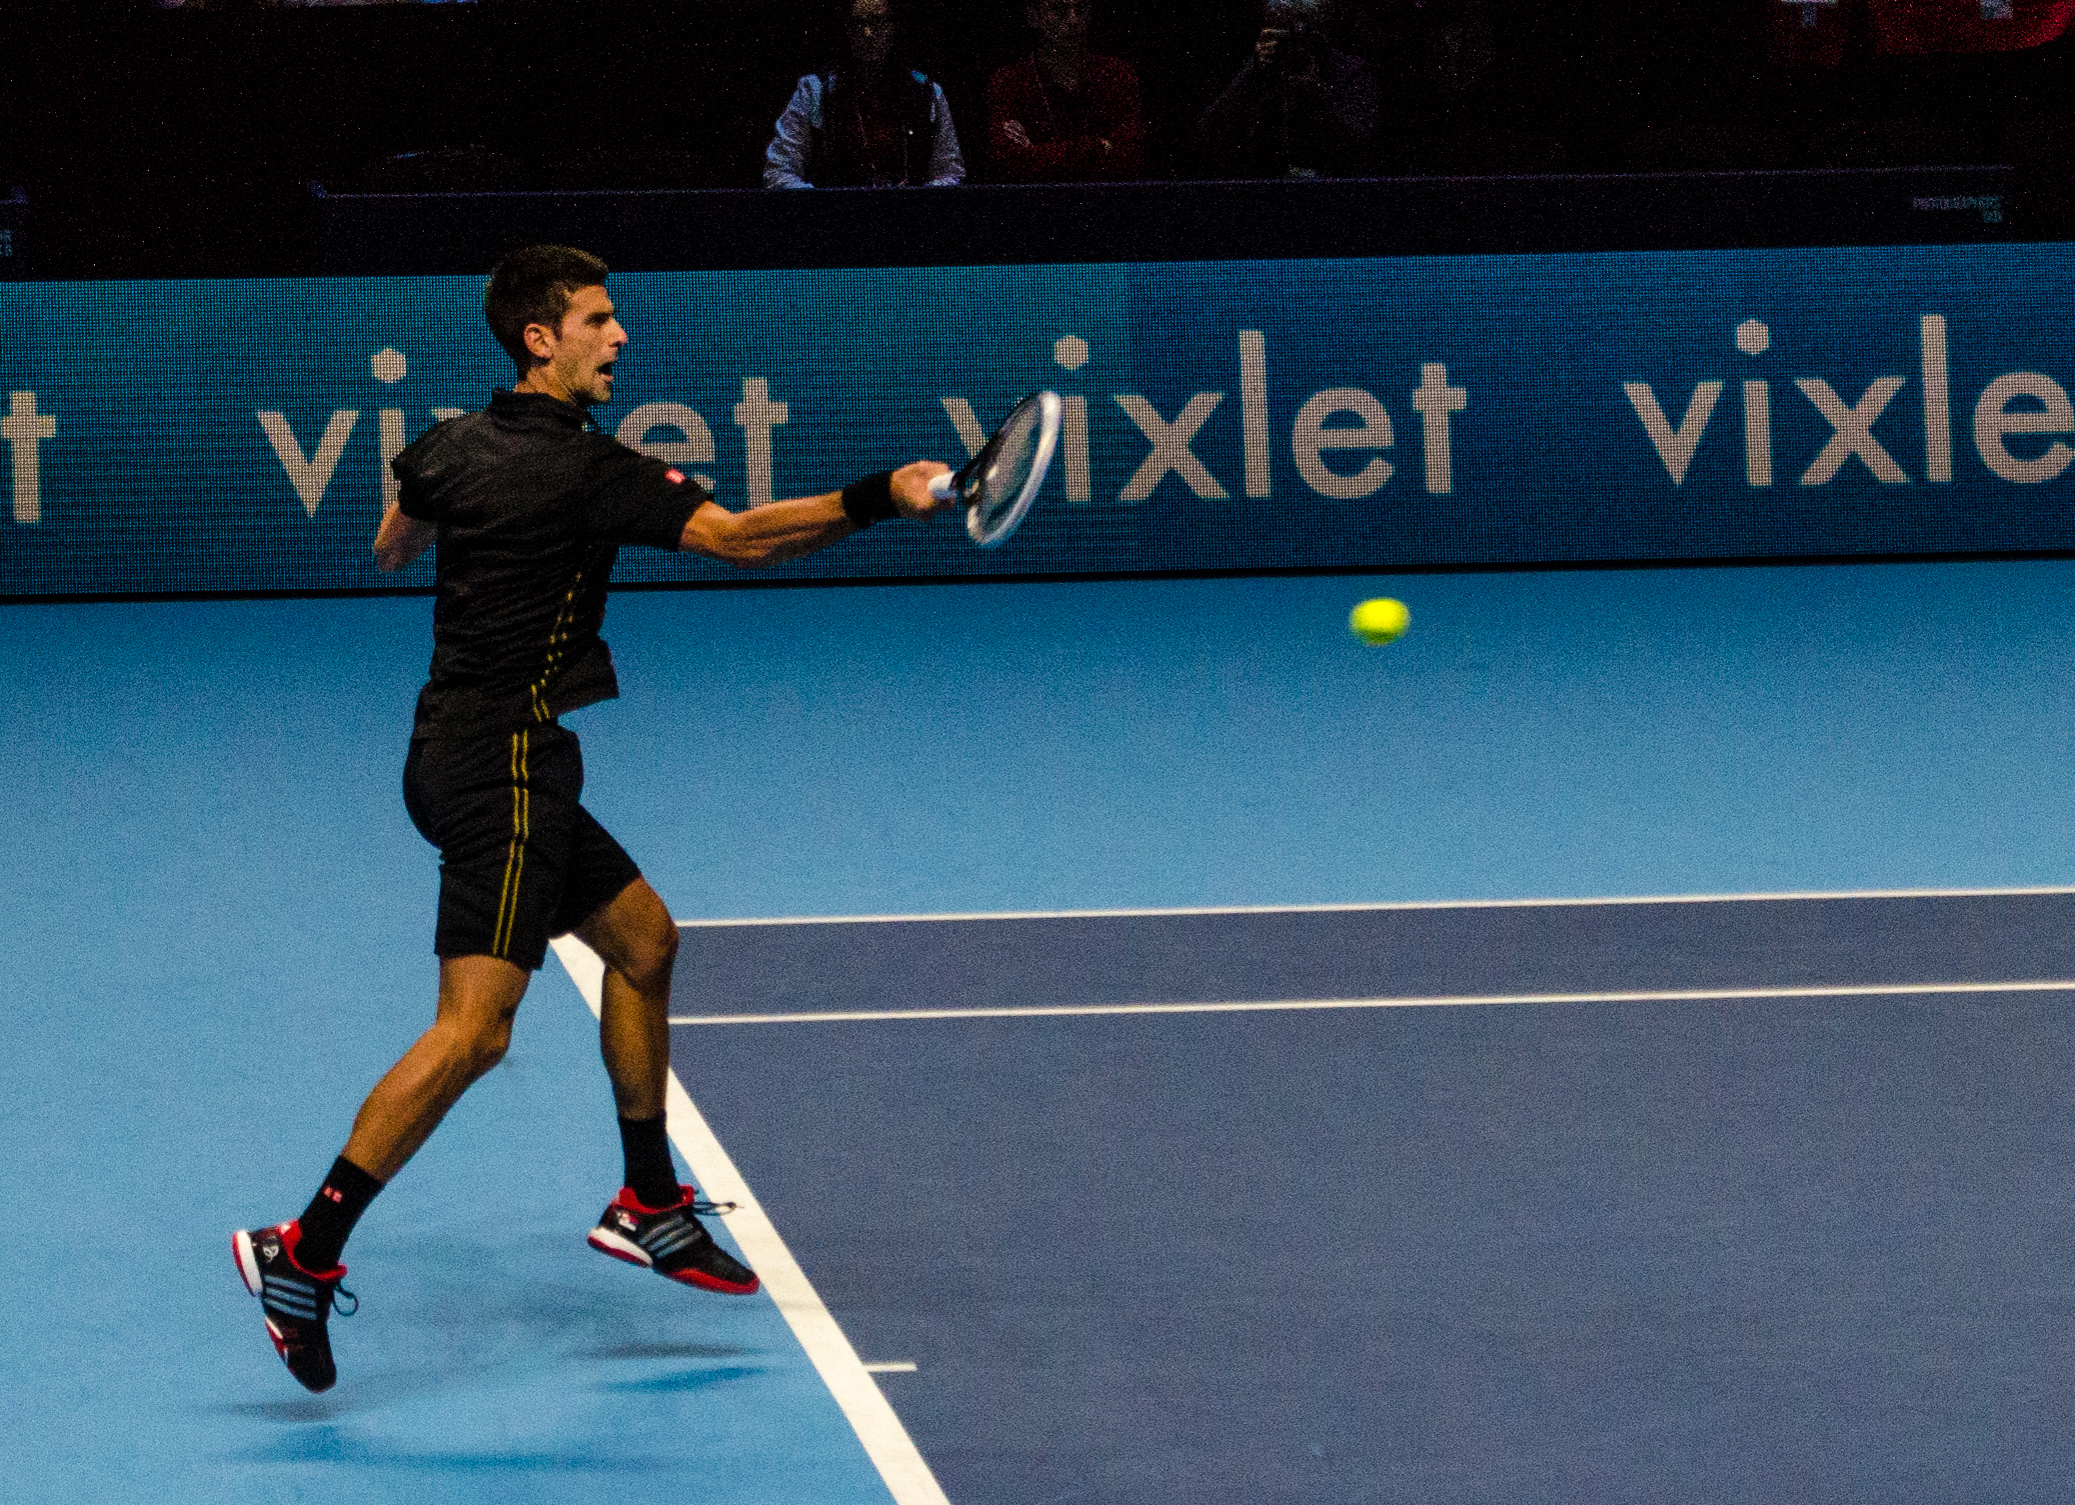 File 2014 11 12 2014 Atp World Tour Finals Novak Djokovic Forehand By Michael Frey Jpg Wikimedia Commons